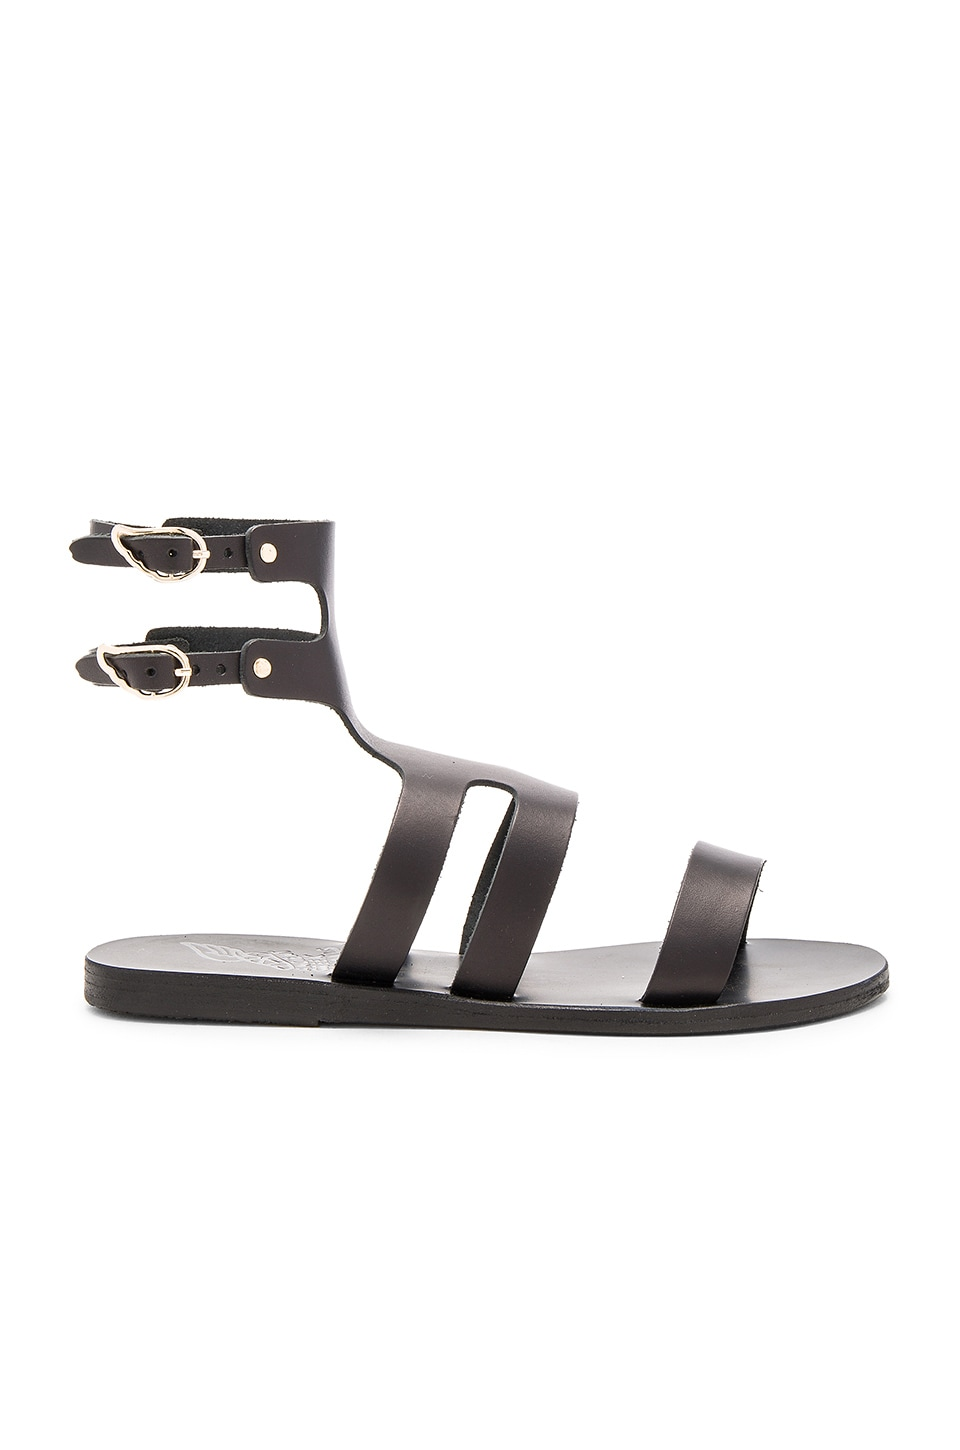 Agapi Sandal by Ancient Greek Sandals